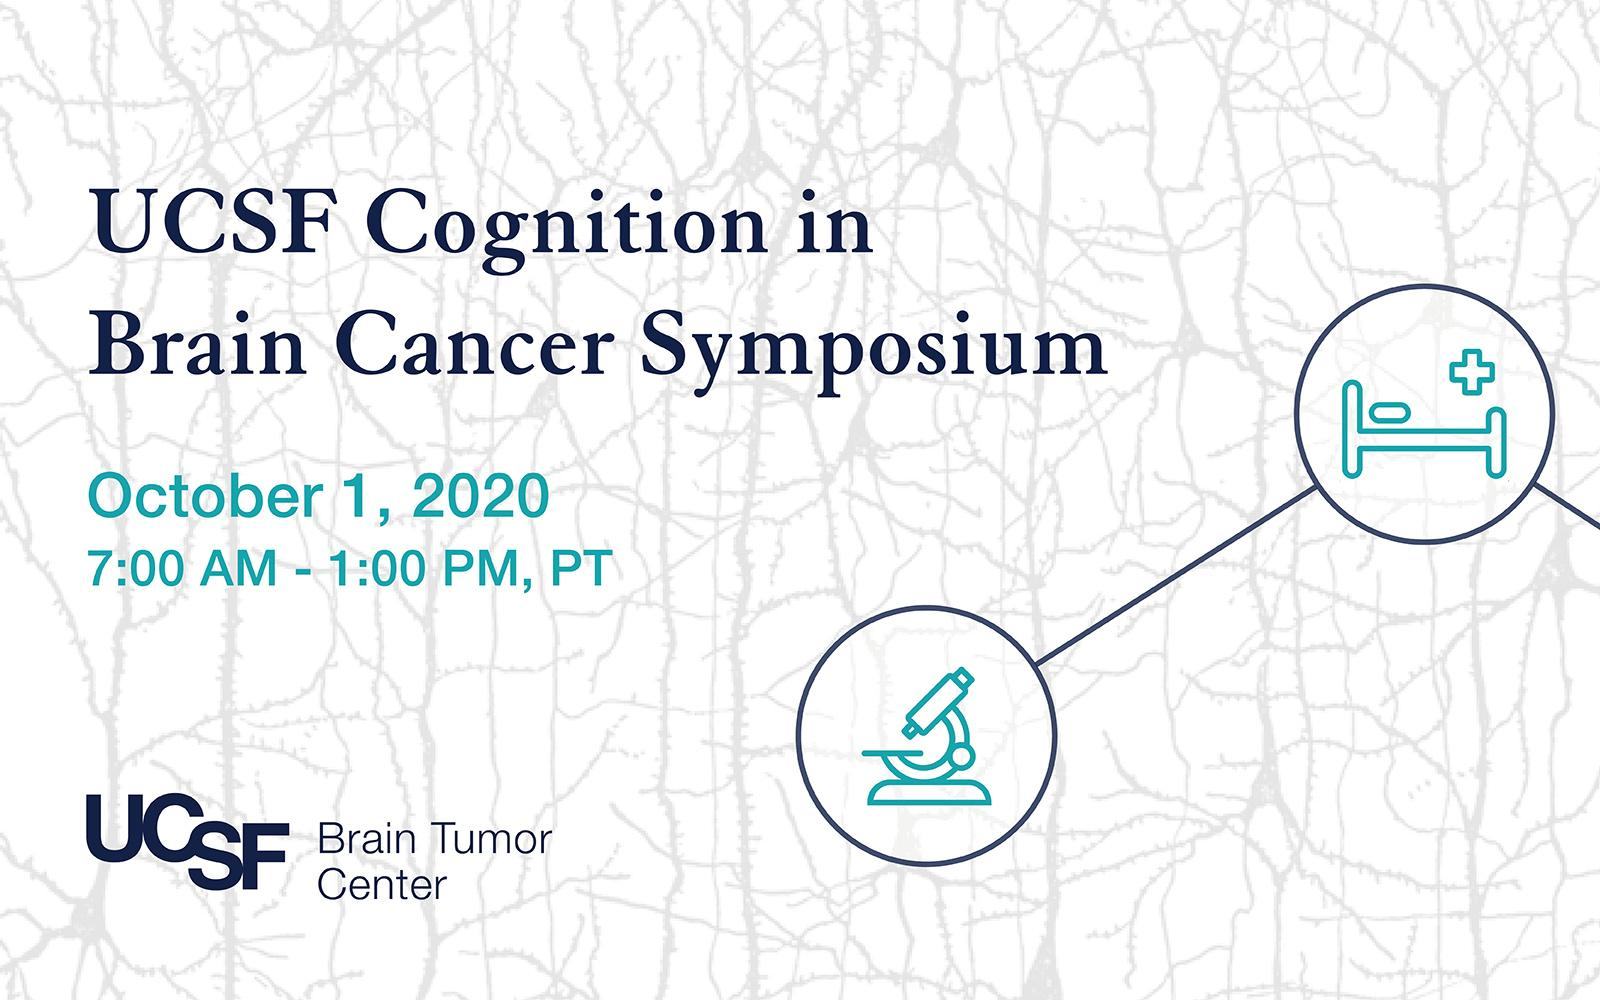 UCSF Cognition in Brain Cancer Symposium